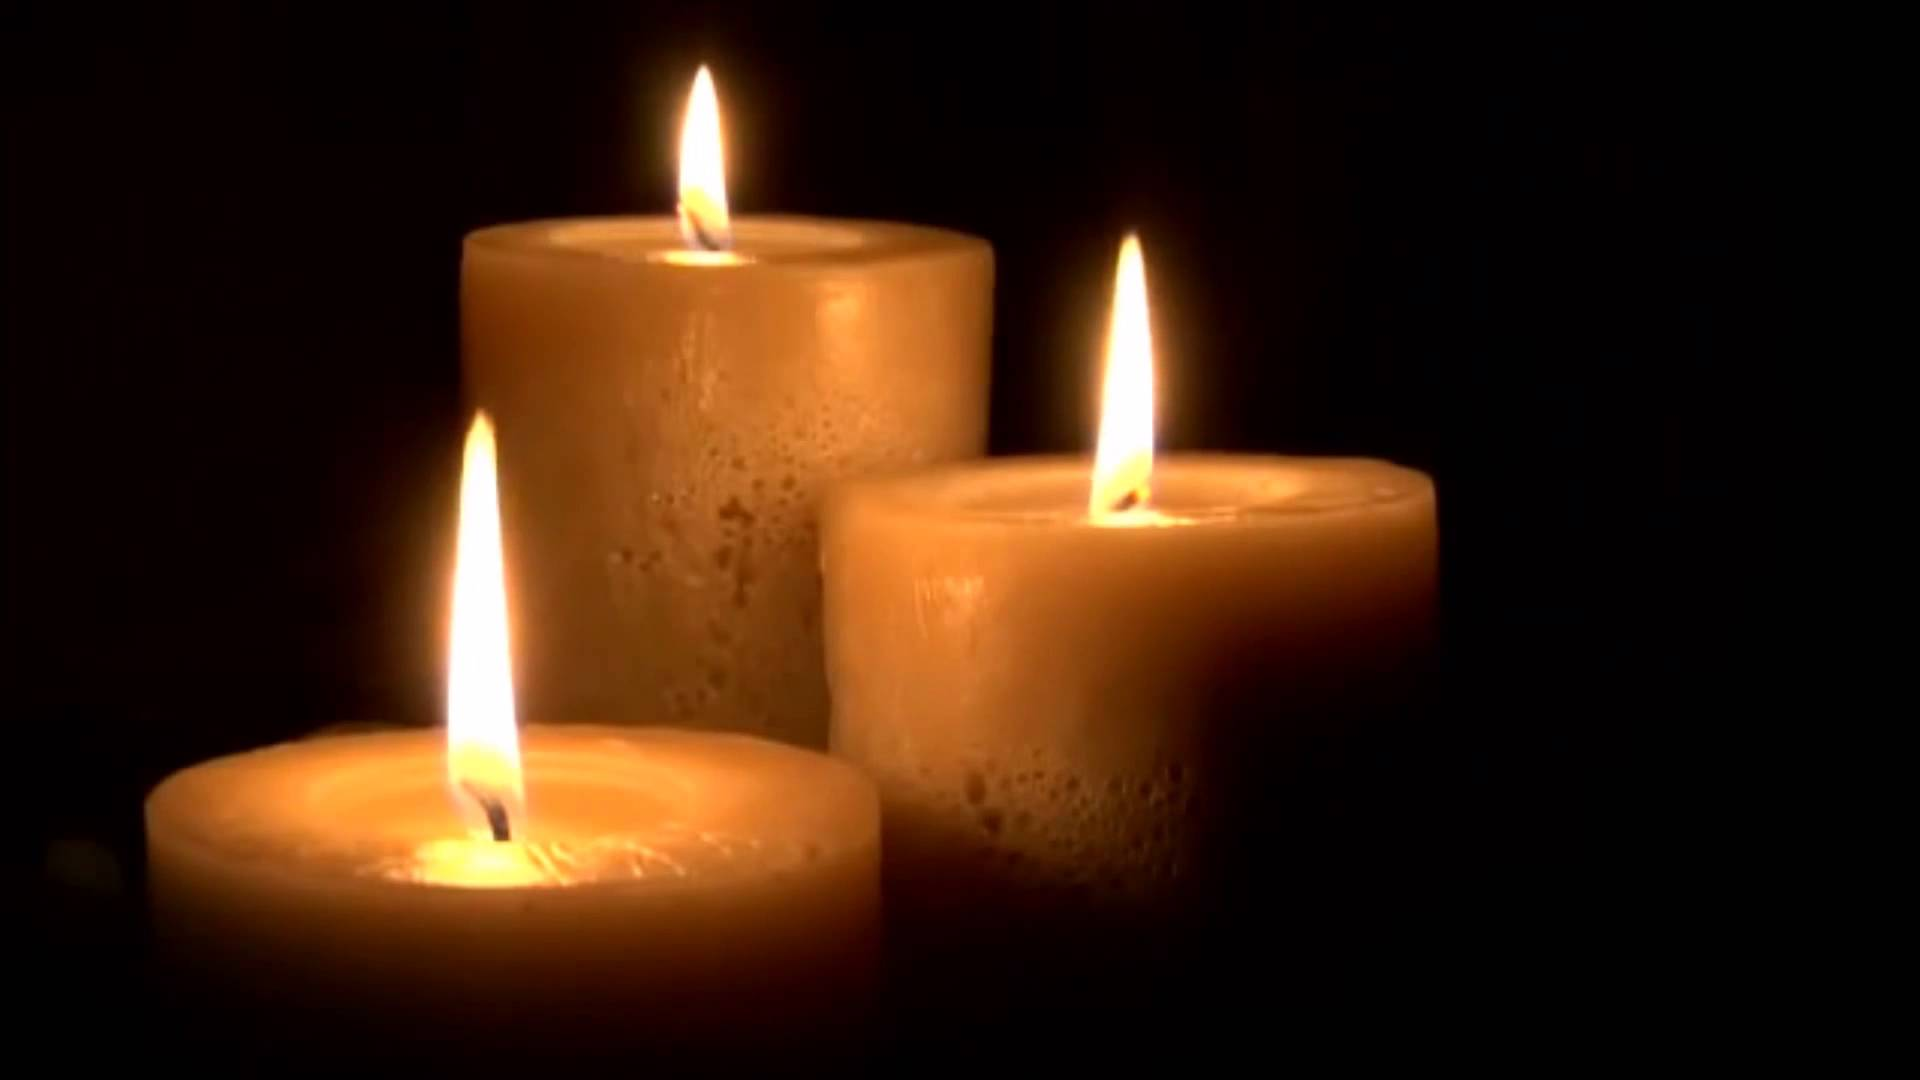 Romantic Candles With Soft Music (1 Hour) - YouTube